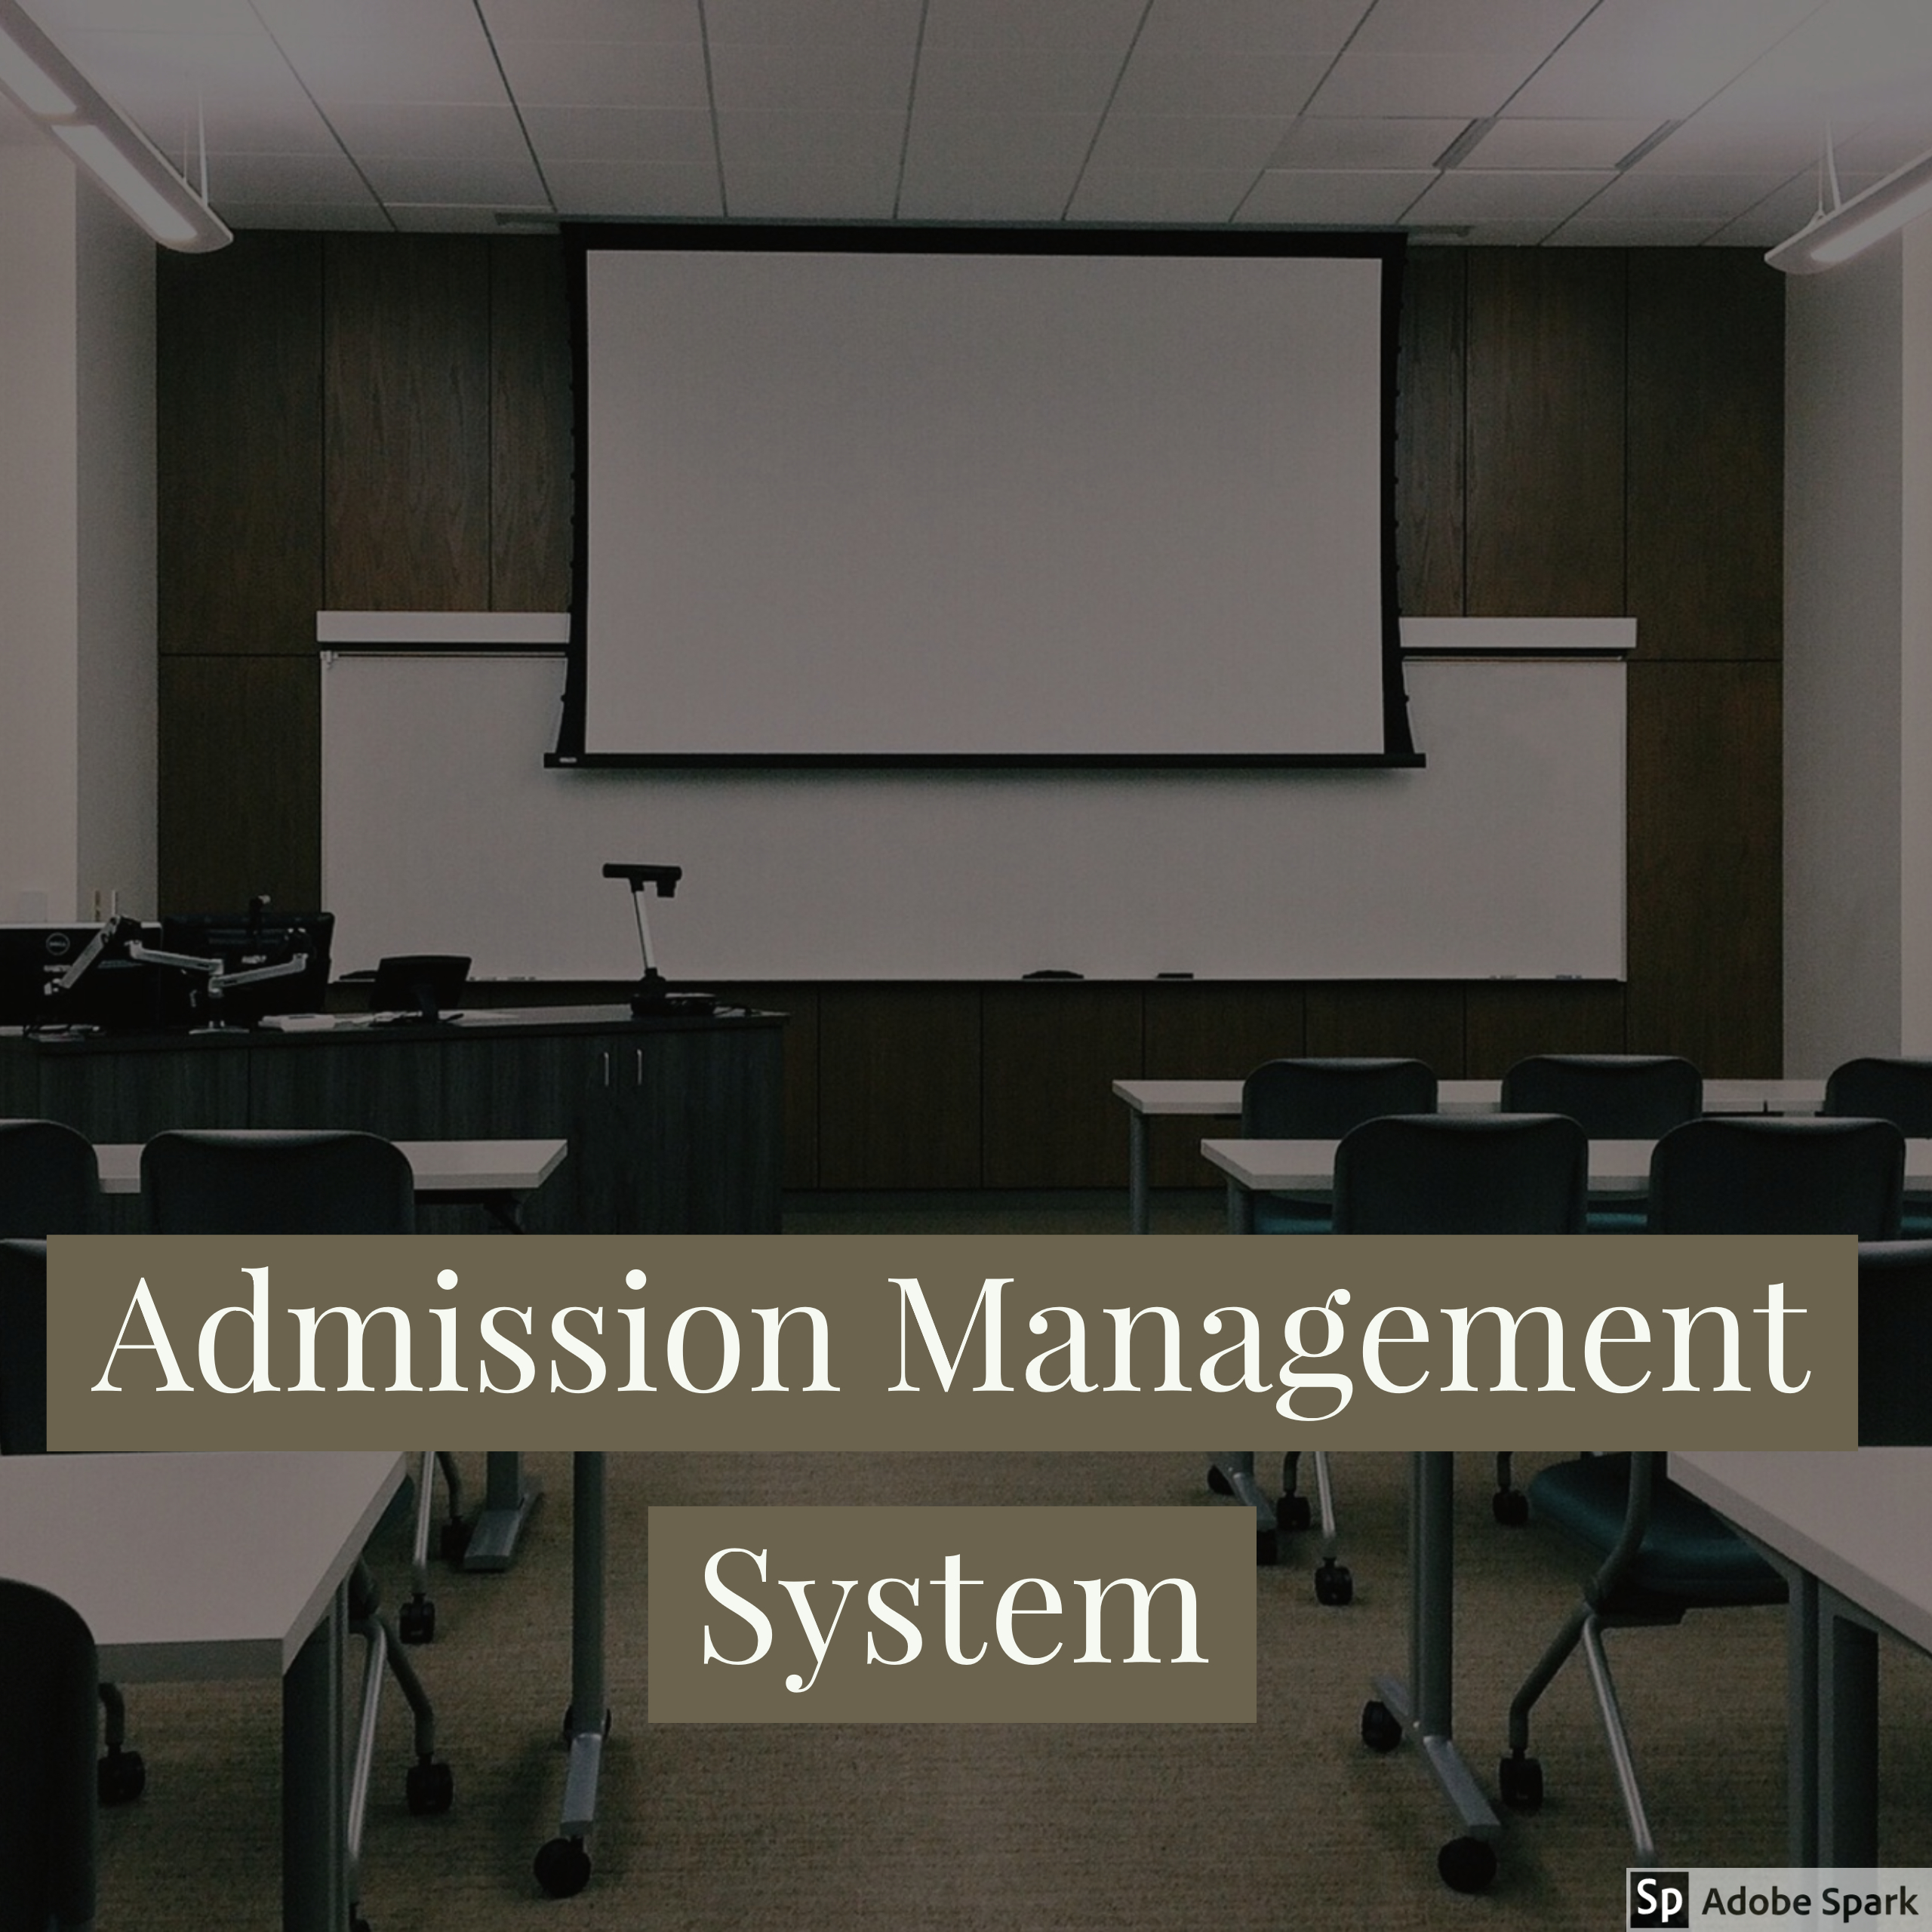 Design and Implementation of An Admission Management System - CodeMint Mint for Sale